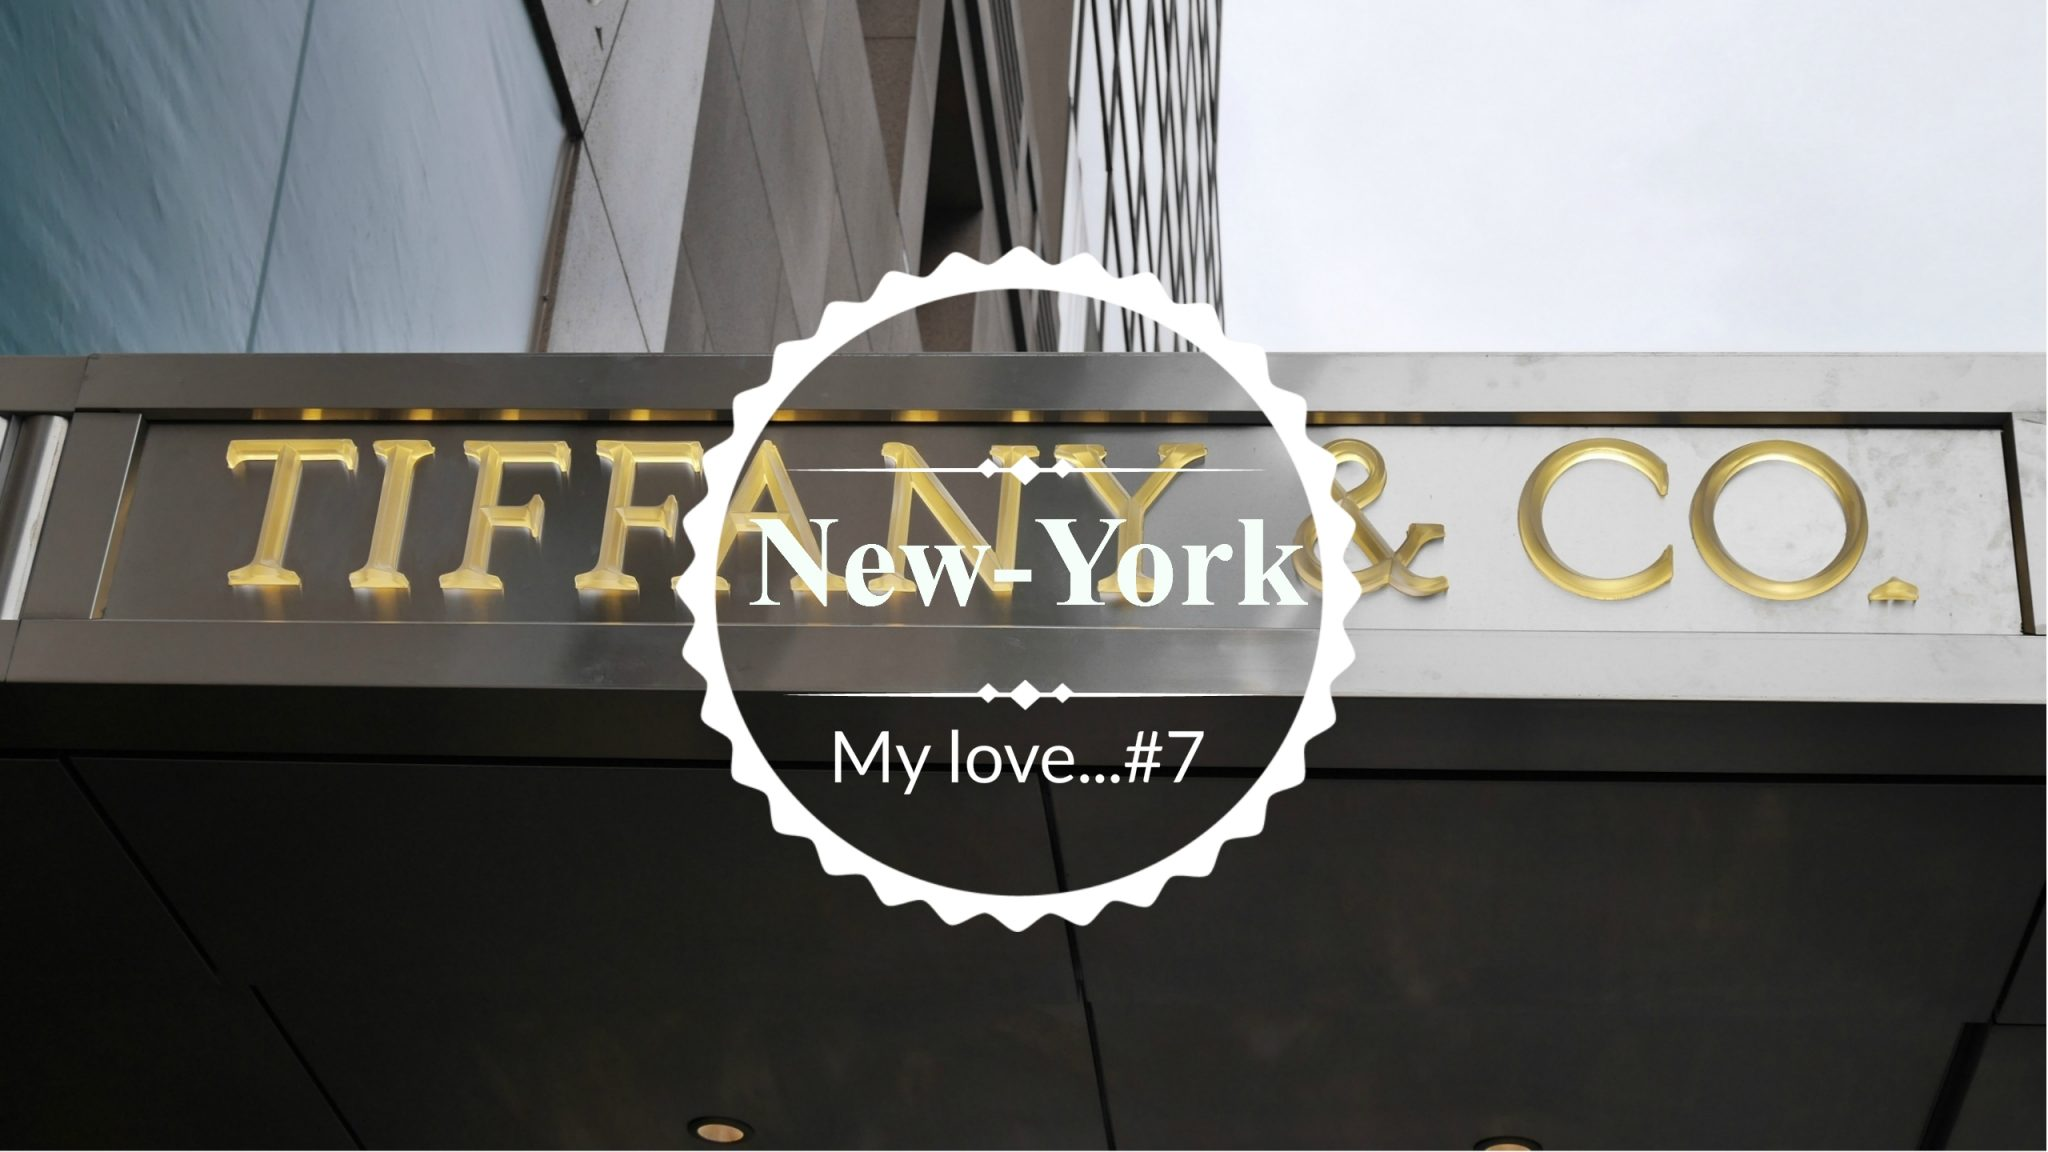 New-York-my-love-7